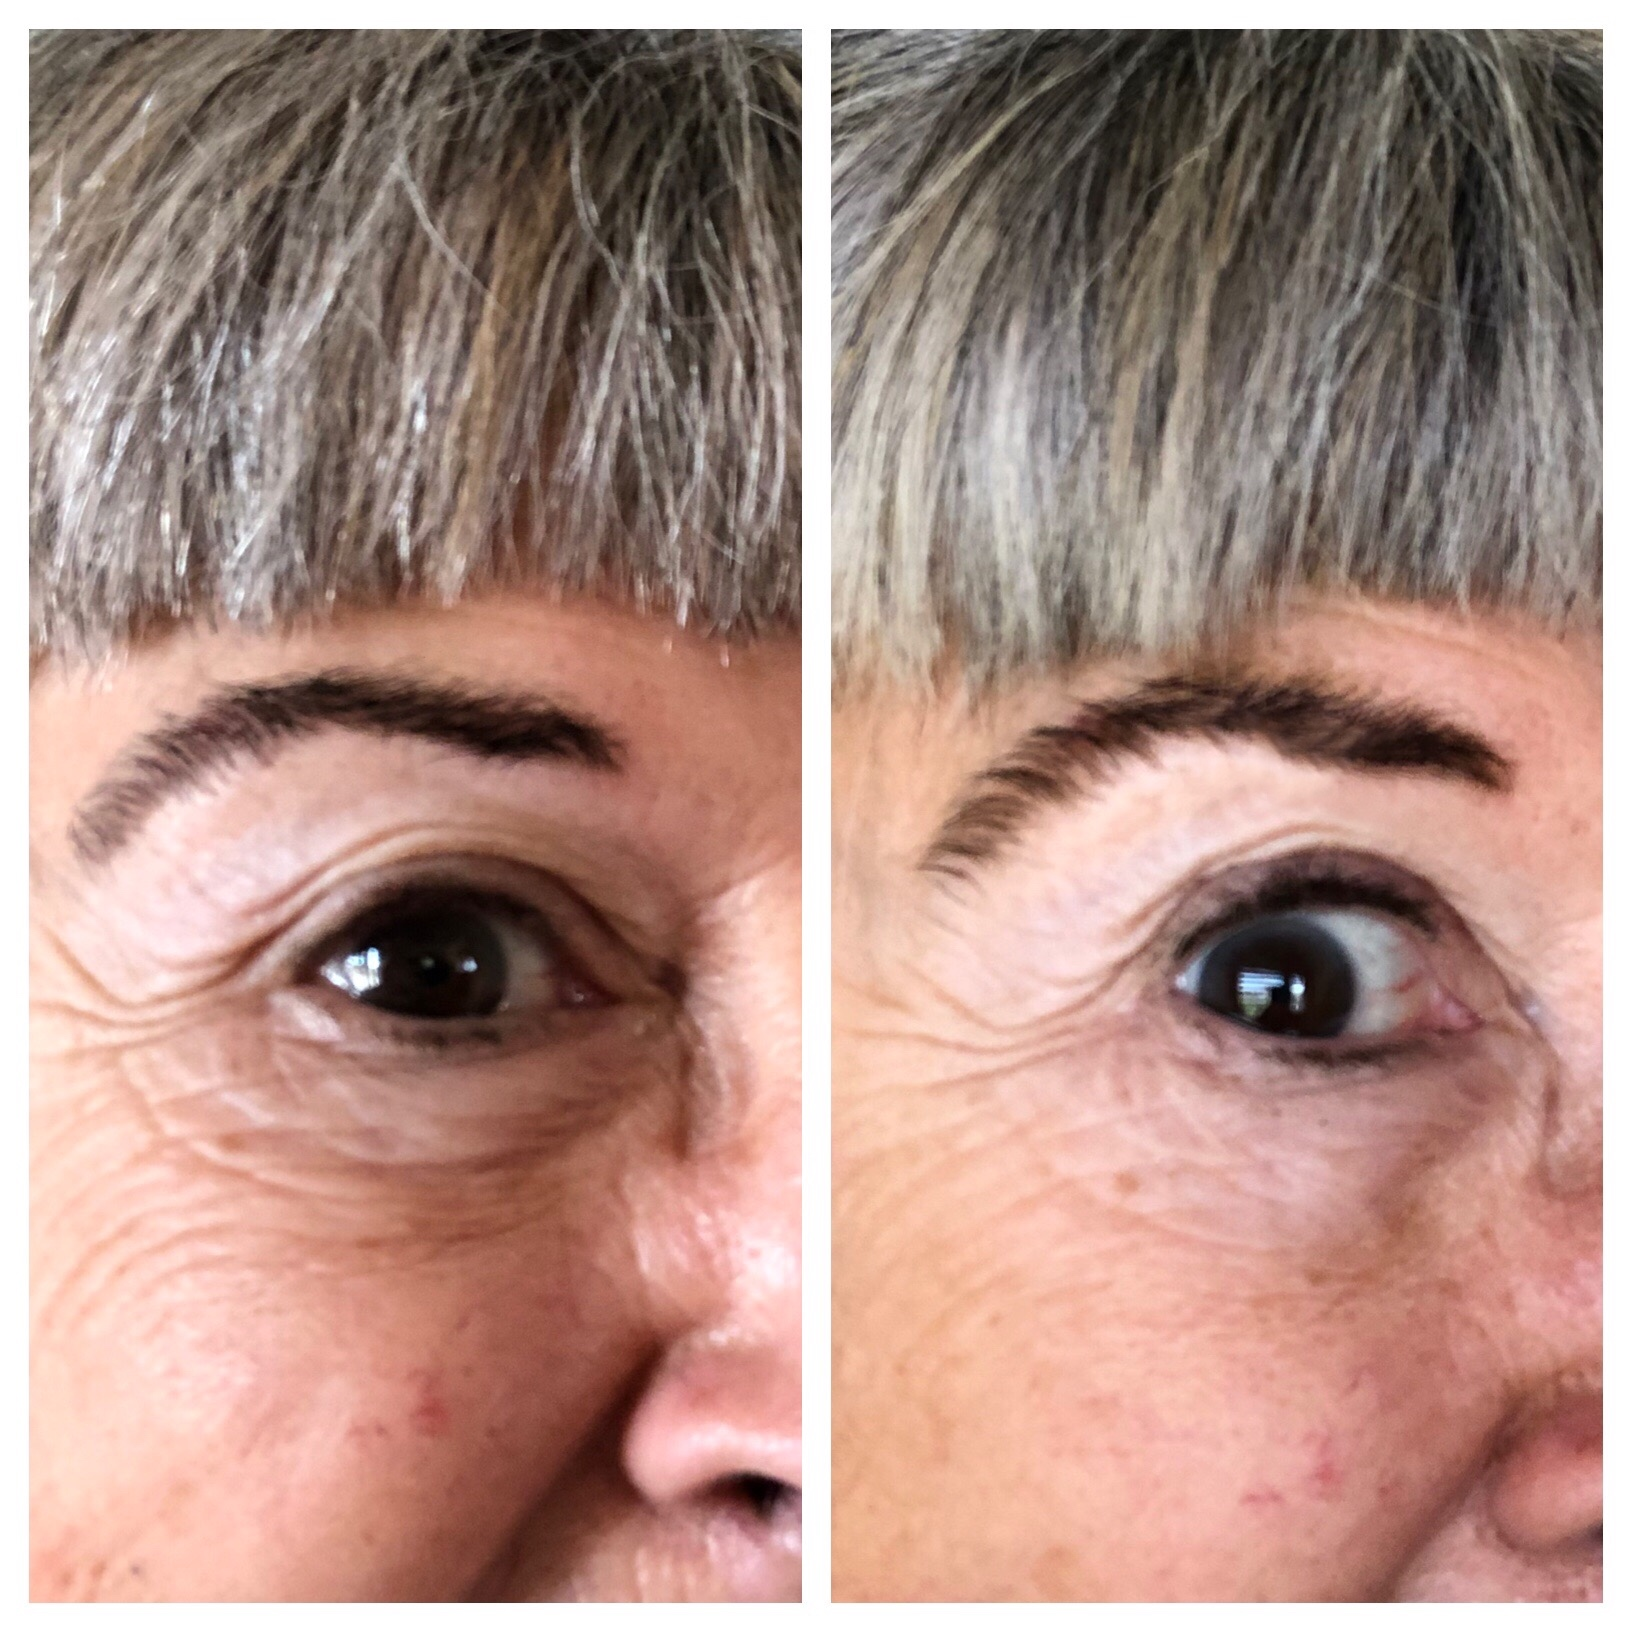 Before and after a seven day trial of PRAI Ageless Eye Tight Uplift Serum and Ageless Eye D-Crease.